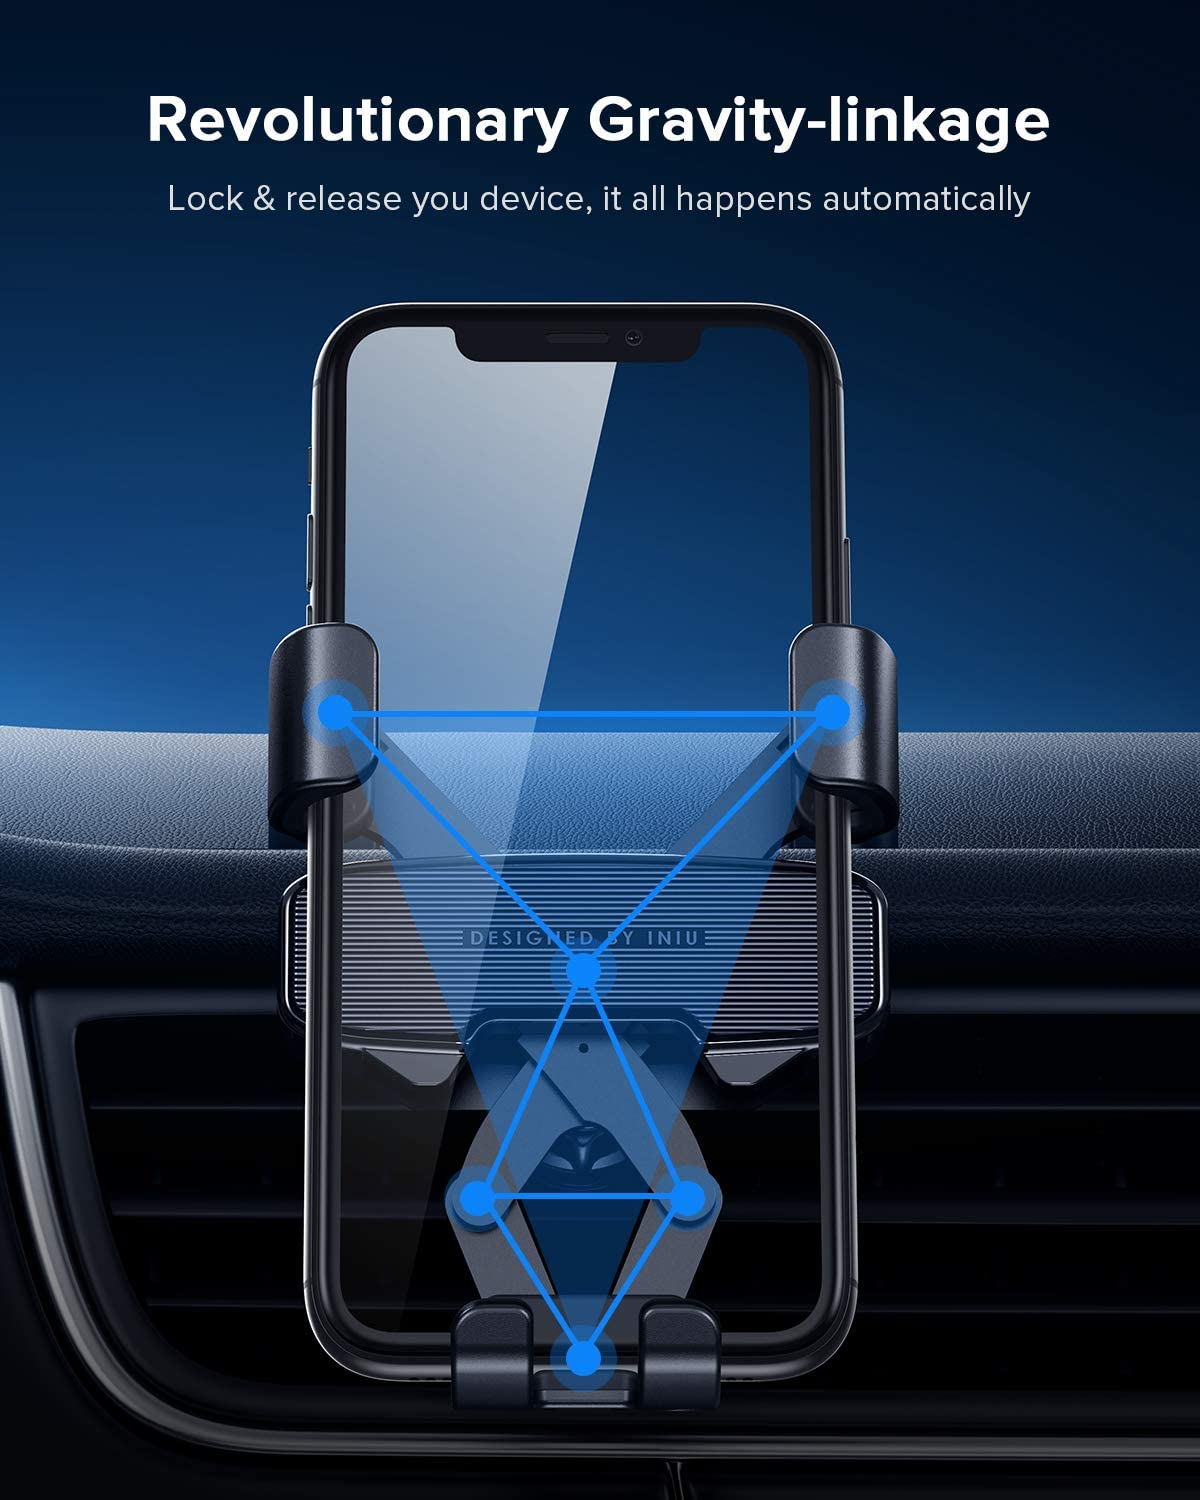 360/° Universal Hands Free Car Cell Phone Holder for iPhone 11 Max Pro XS X 8 Plus Samsung S10 Google Oneplus LG GPS etc Gravity Auto Lock /& Release Air Vent Phone Holder for Car INIU Car Phone Mount